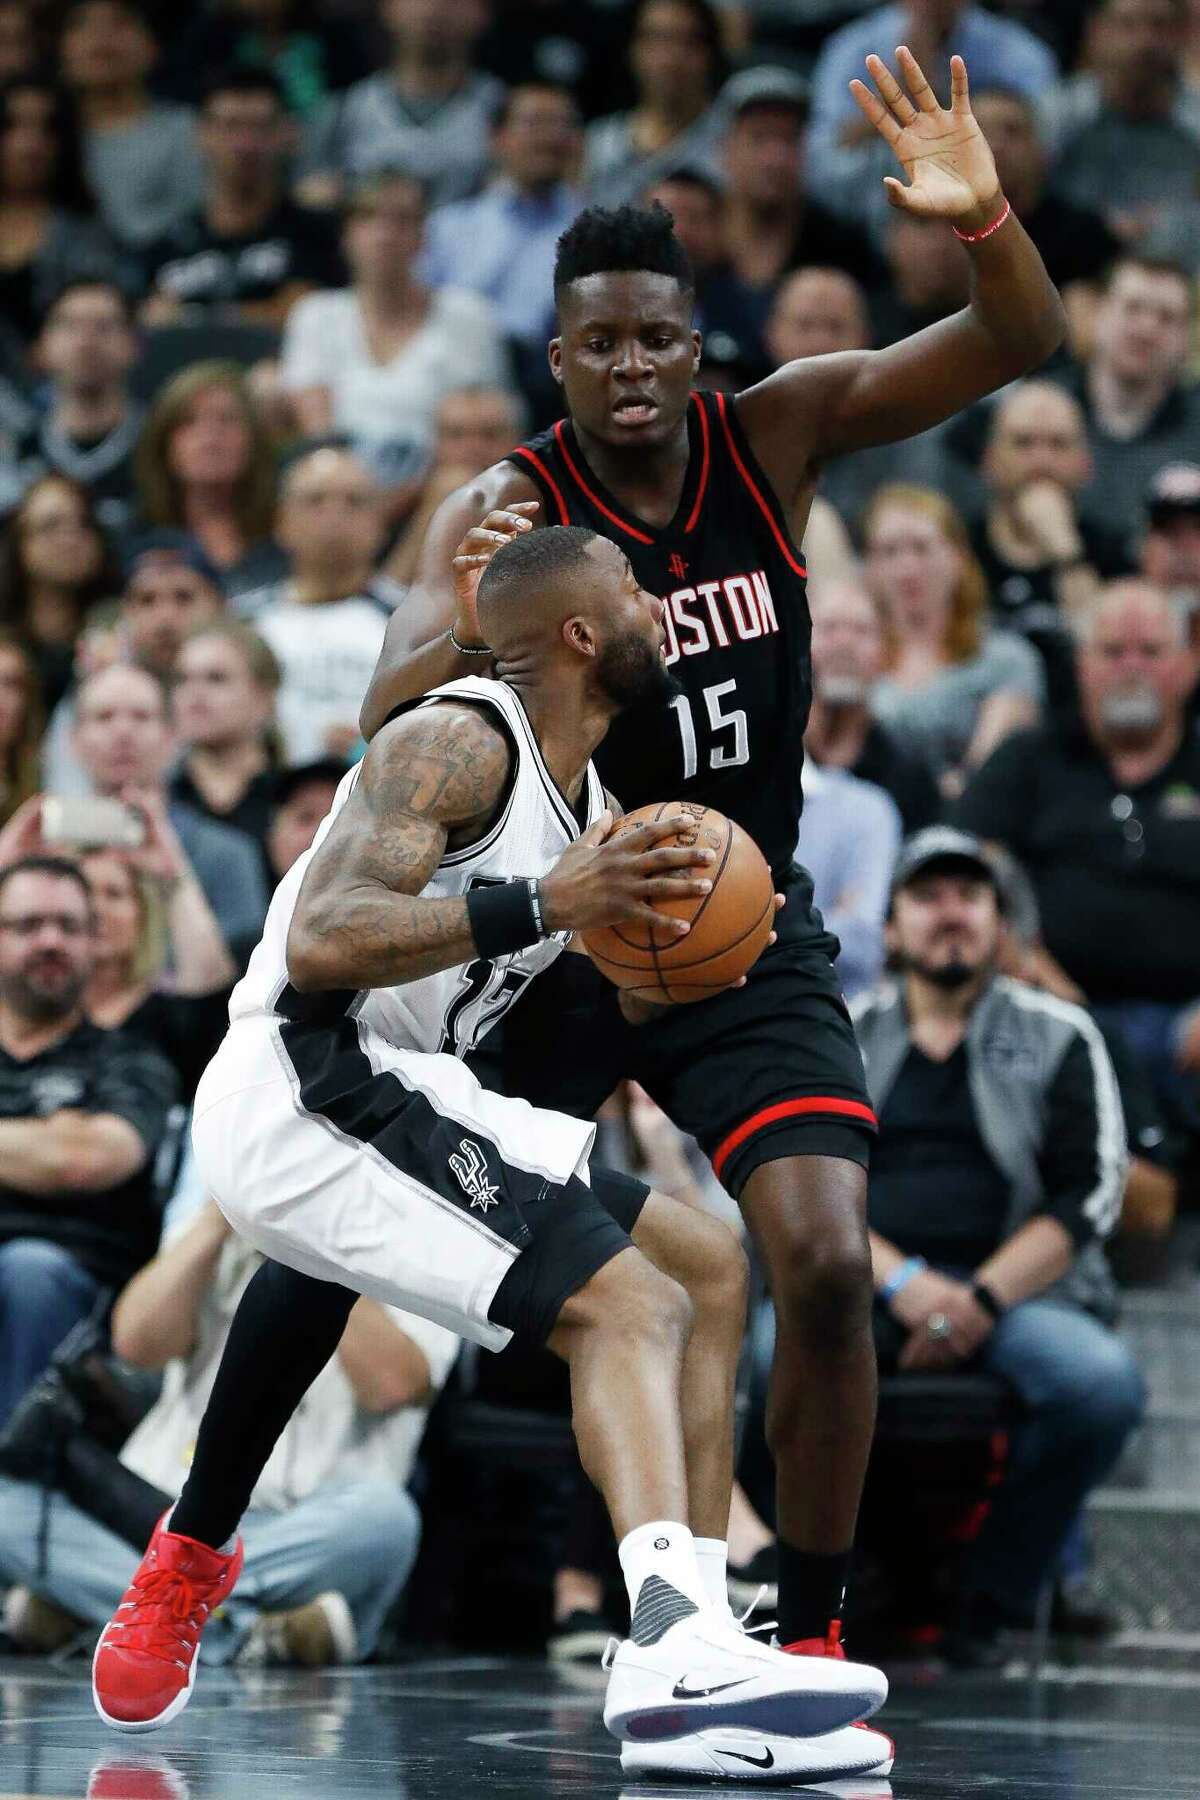 San Antonio Spurs guard Jonathon Simmons (17) looks for a shot over Houston Rockets center Clint Capela (15) during the first half of Game 2 of the second-round of the Western Conference NBA playoffs at AT&T Center, Wednesday, May 3, 2017, in San Antonio.